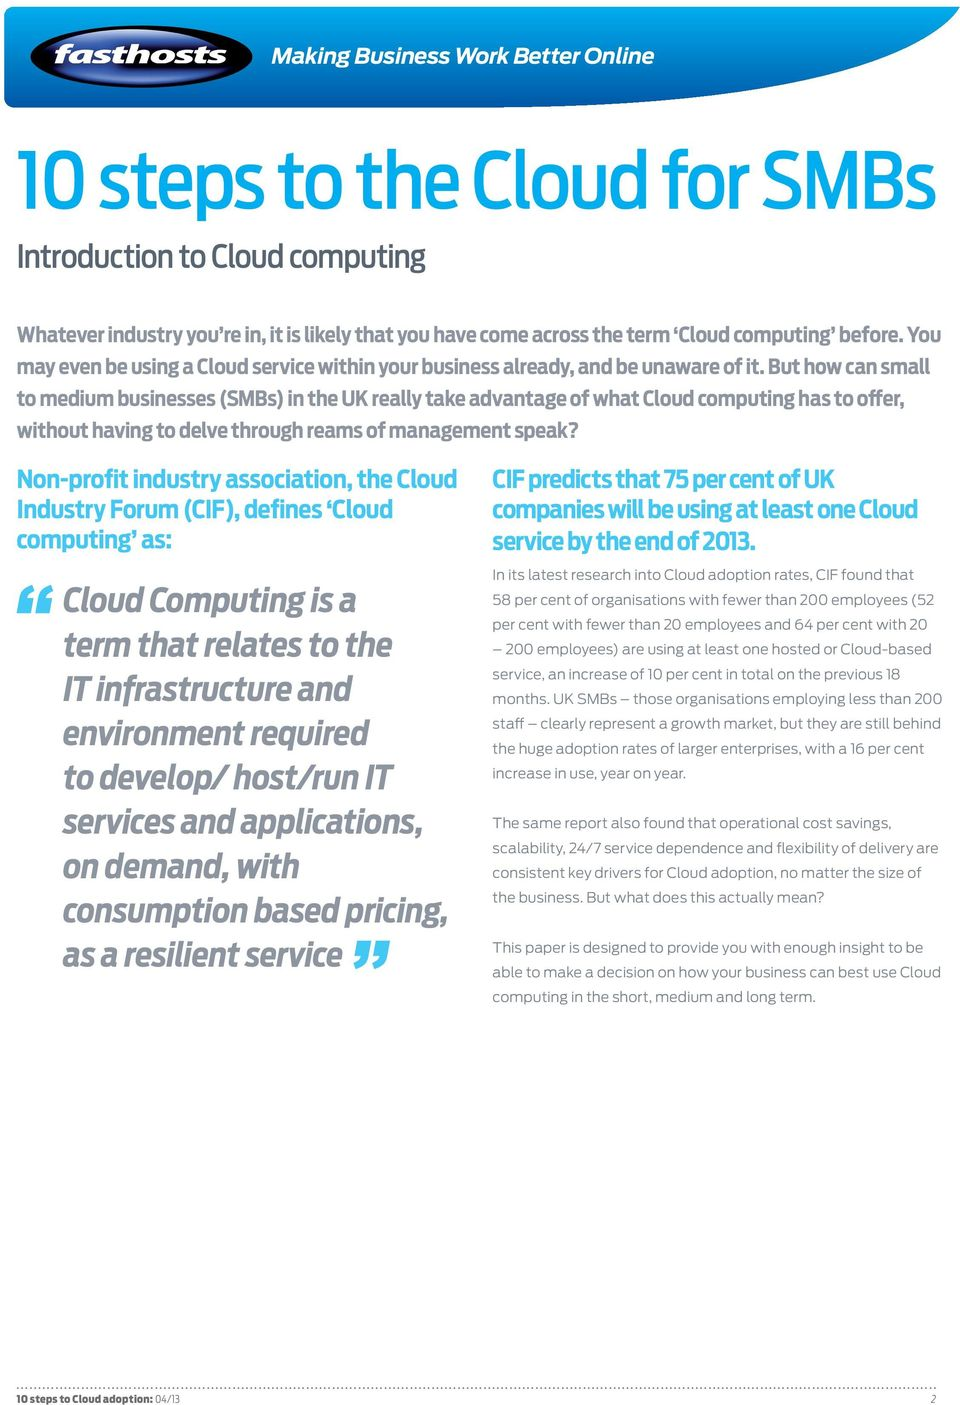 But how can small to medium businesses (SMBs) in the UK really take advantage of what Cloud computing has to offer, without having to delve through reams of management speak?